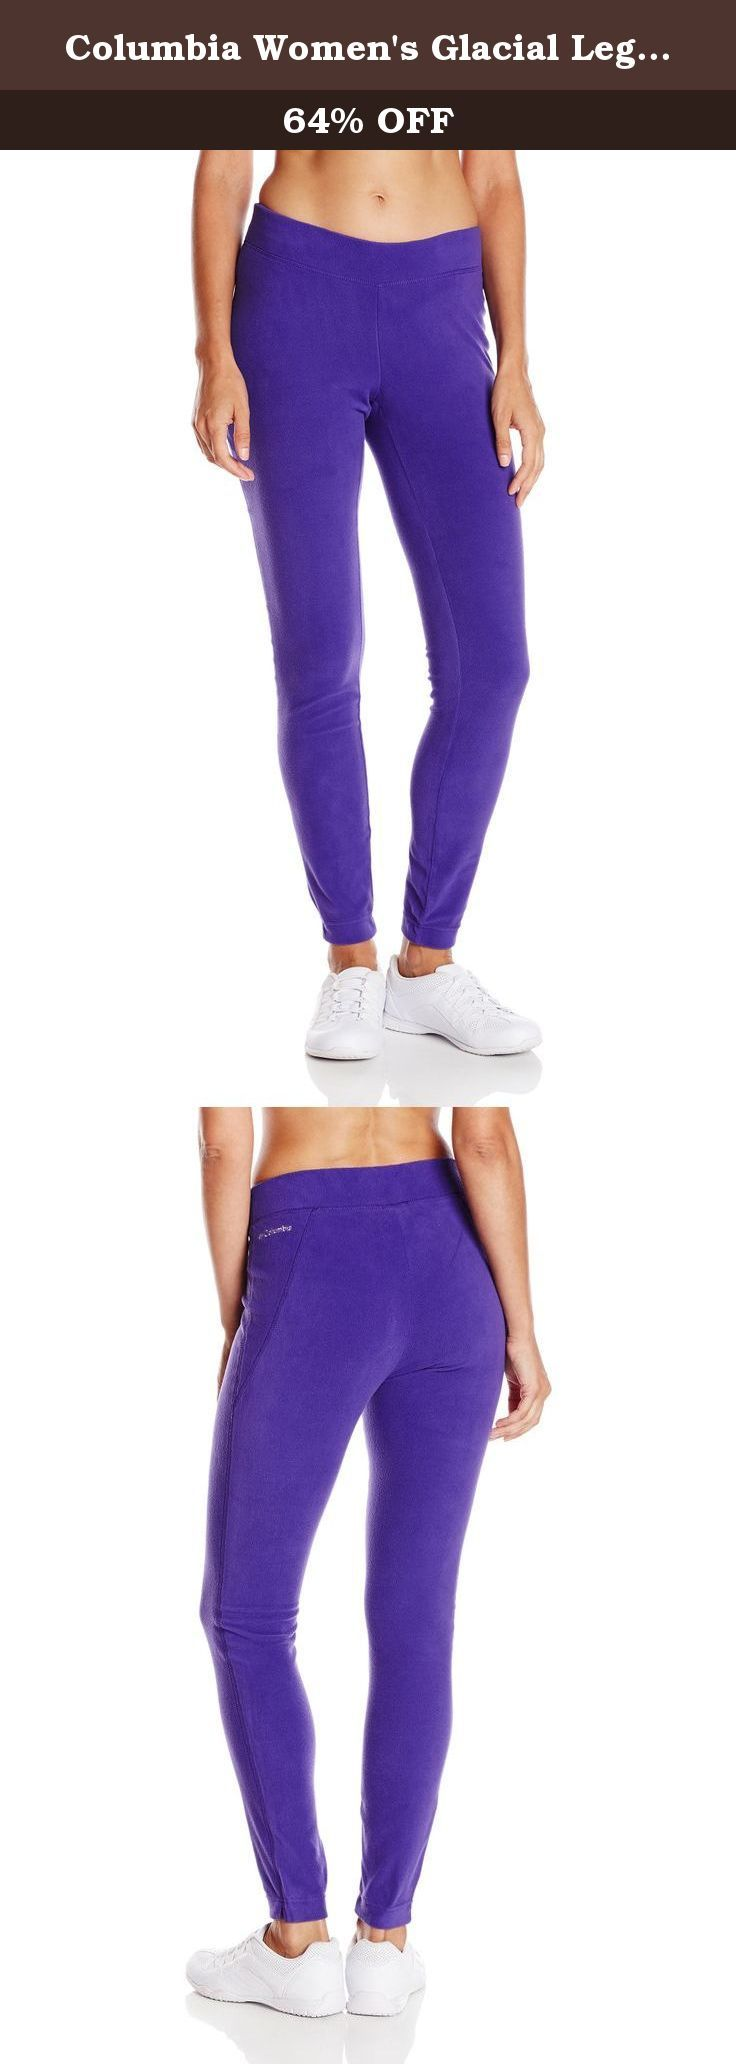 Columbia Women's Glacial Legging, Hyper Purple, Small. These Columbia women's glacial leggings will add a new look to your wardrobe. Product features legging active fit 100 percent polyester.